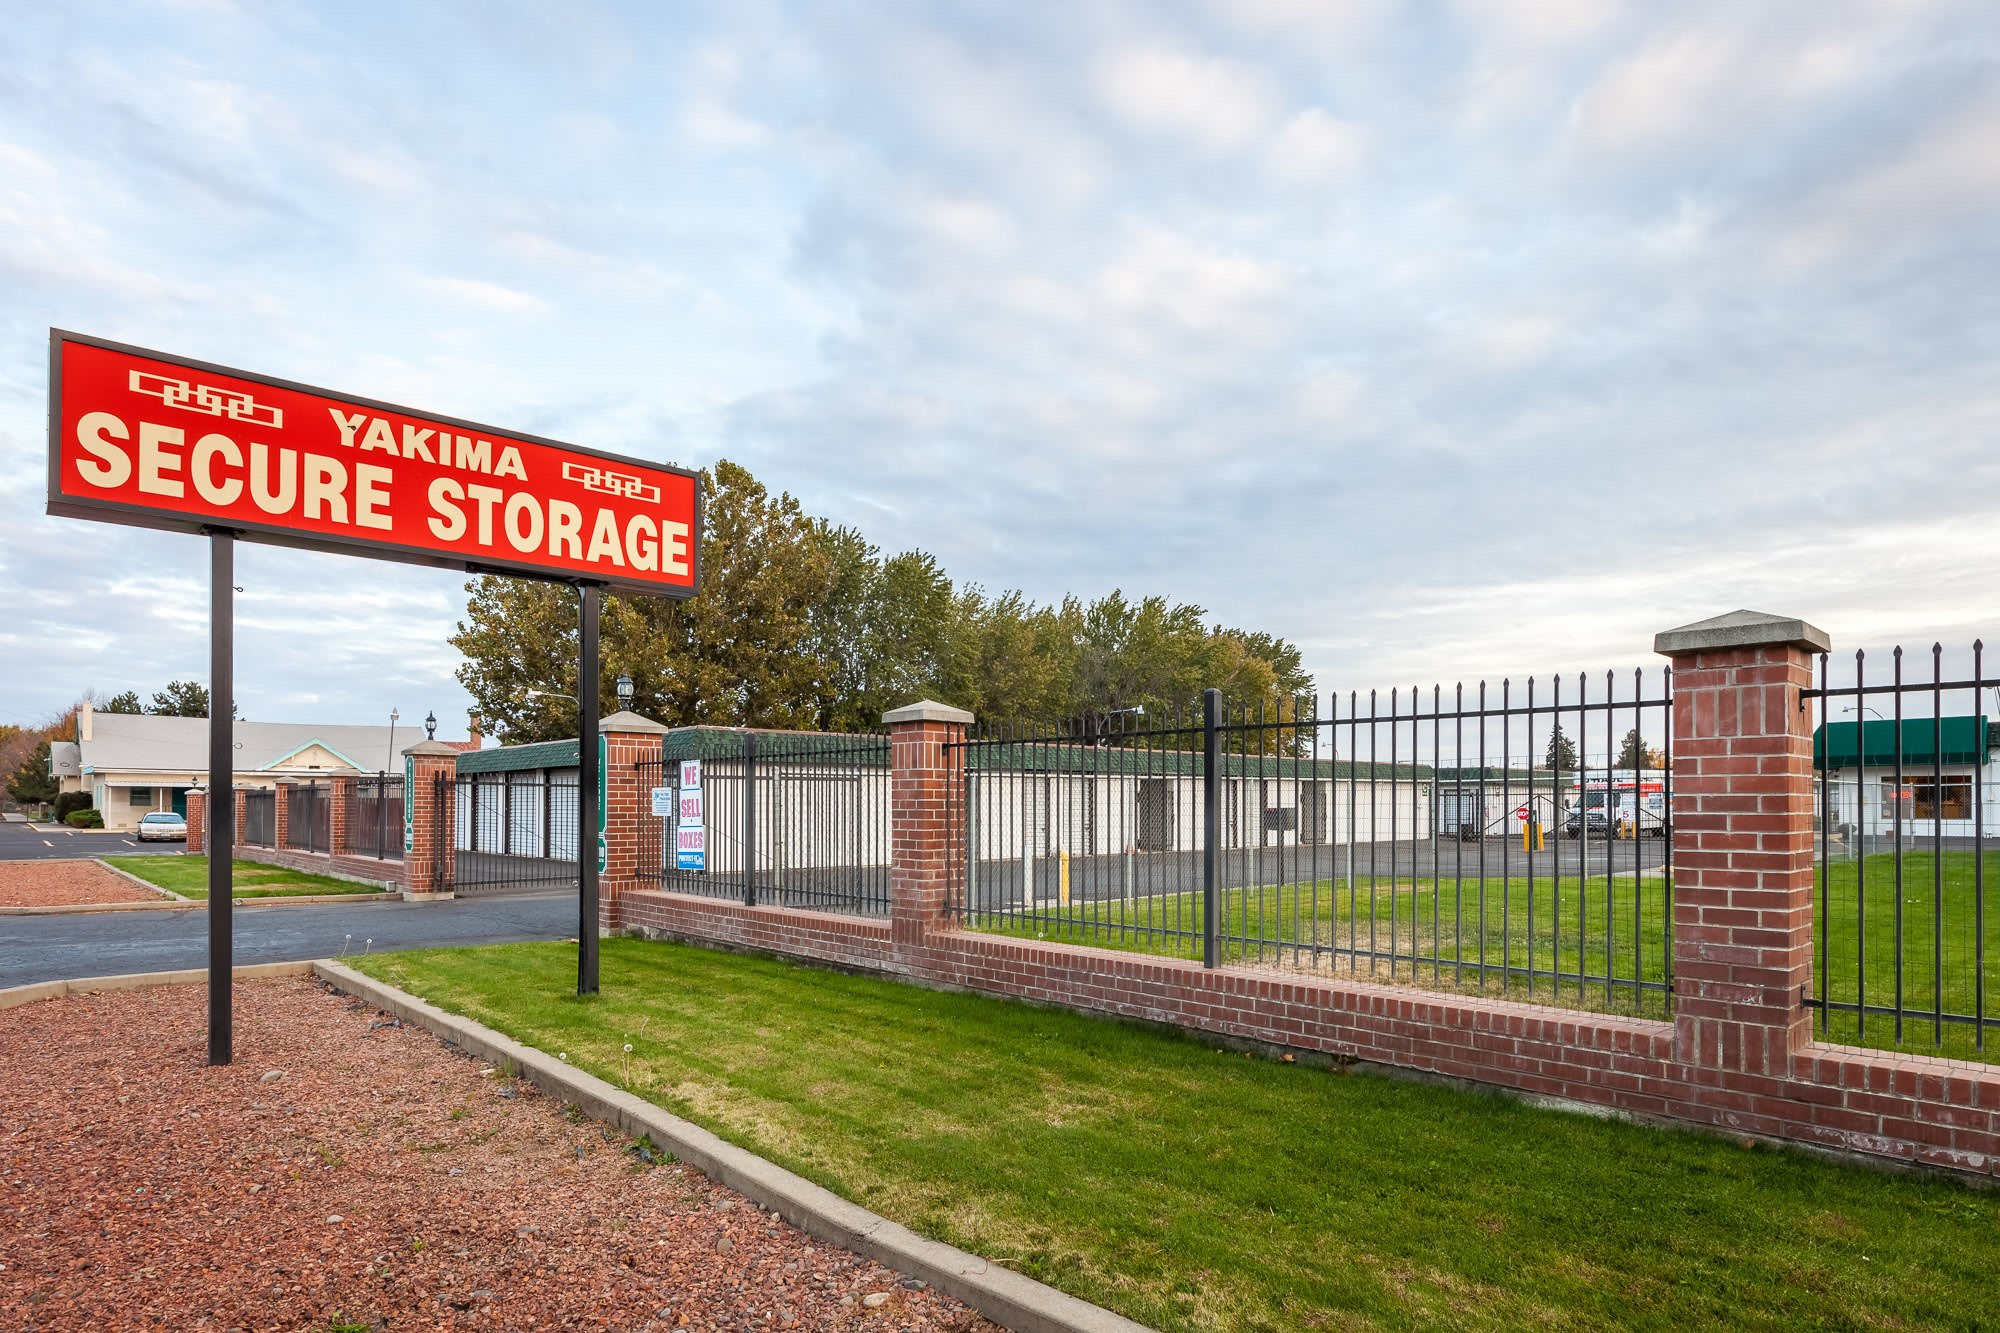 Self storage for all of your needs in Yakima, WA